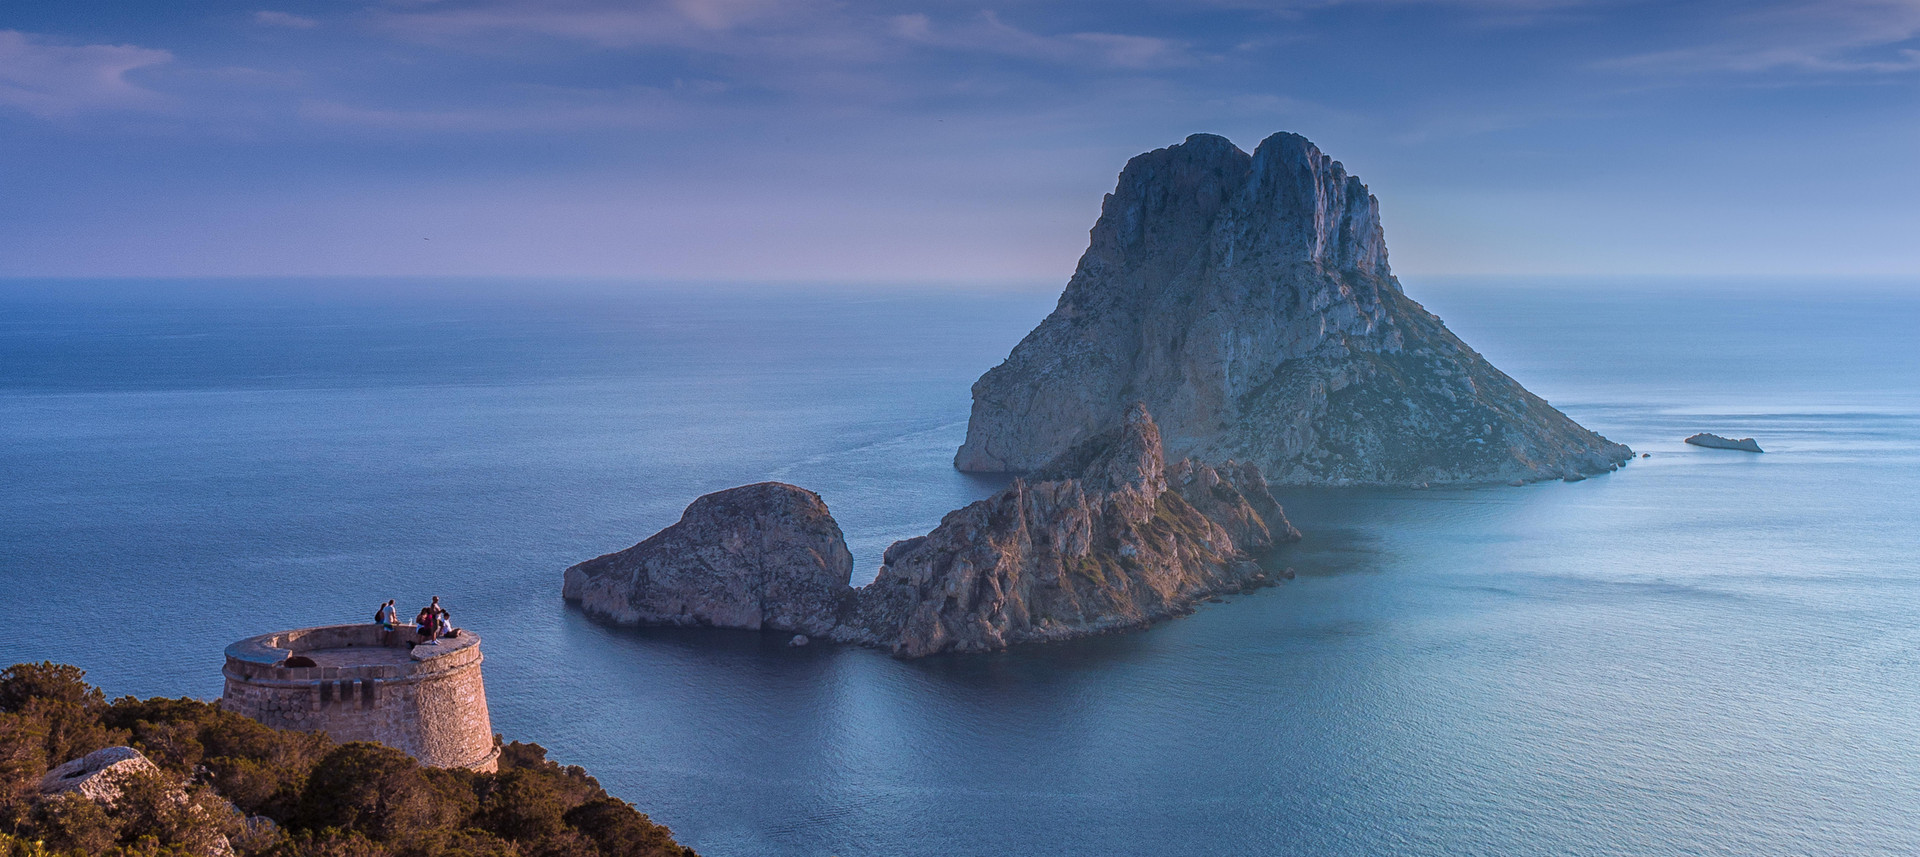 Es Vedra & the Pirate Tower, Ibiza